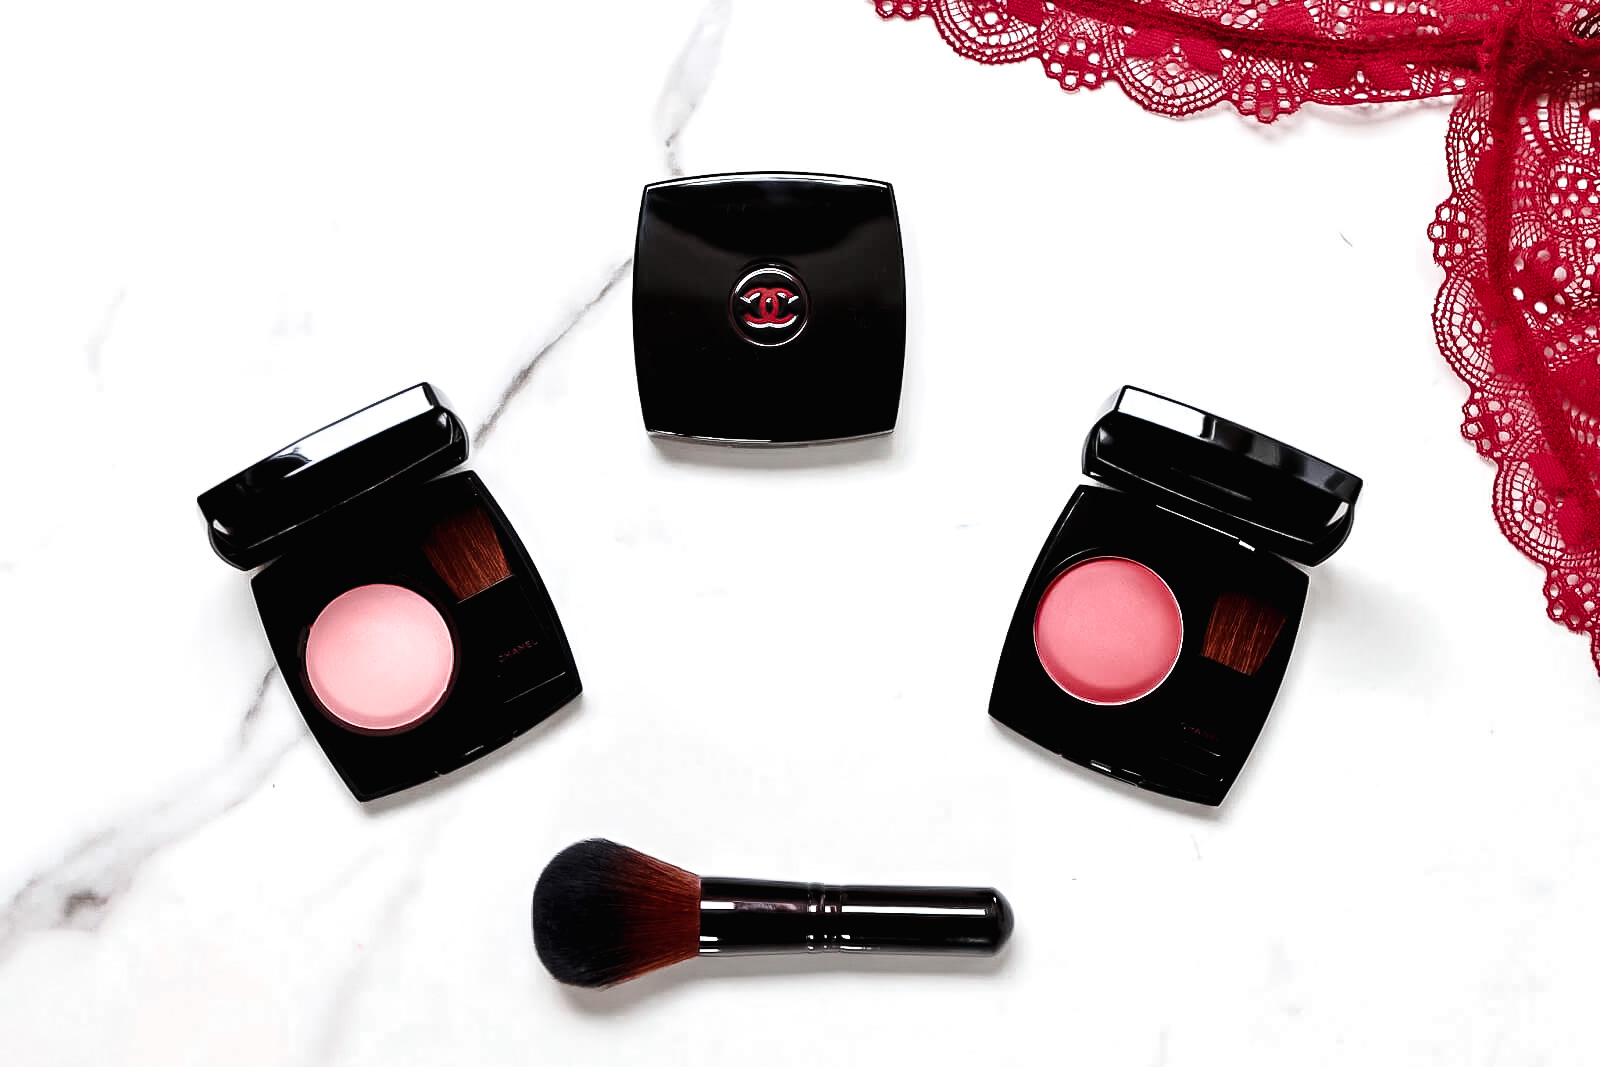 Chanel Joues Contraste Blush avis